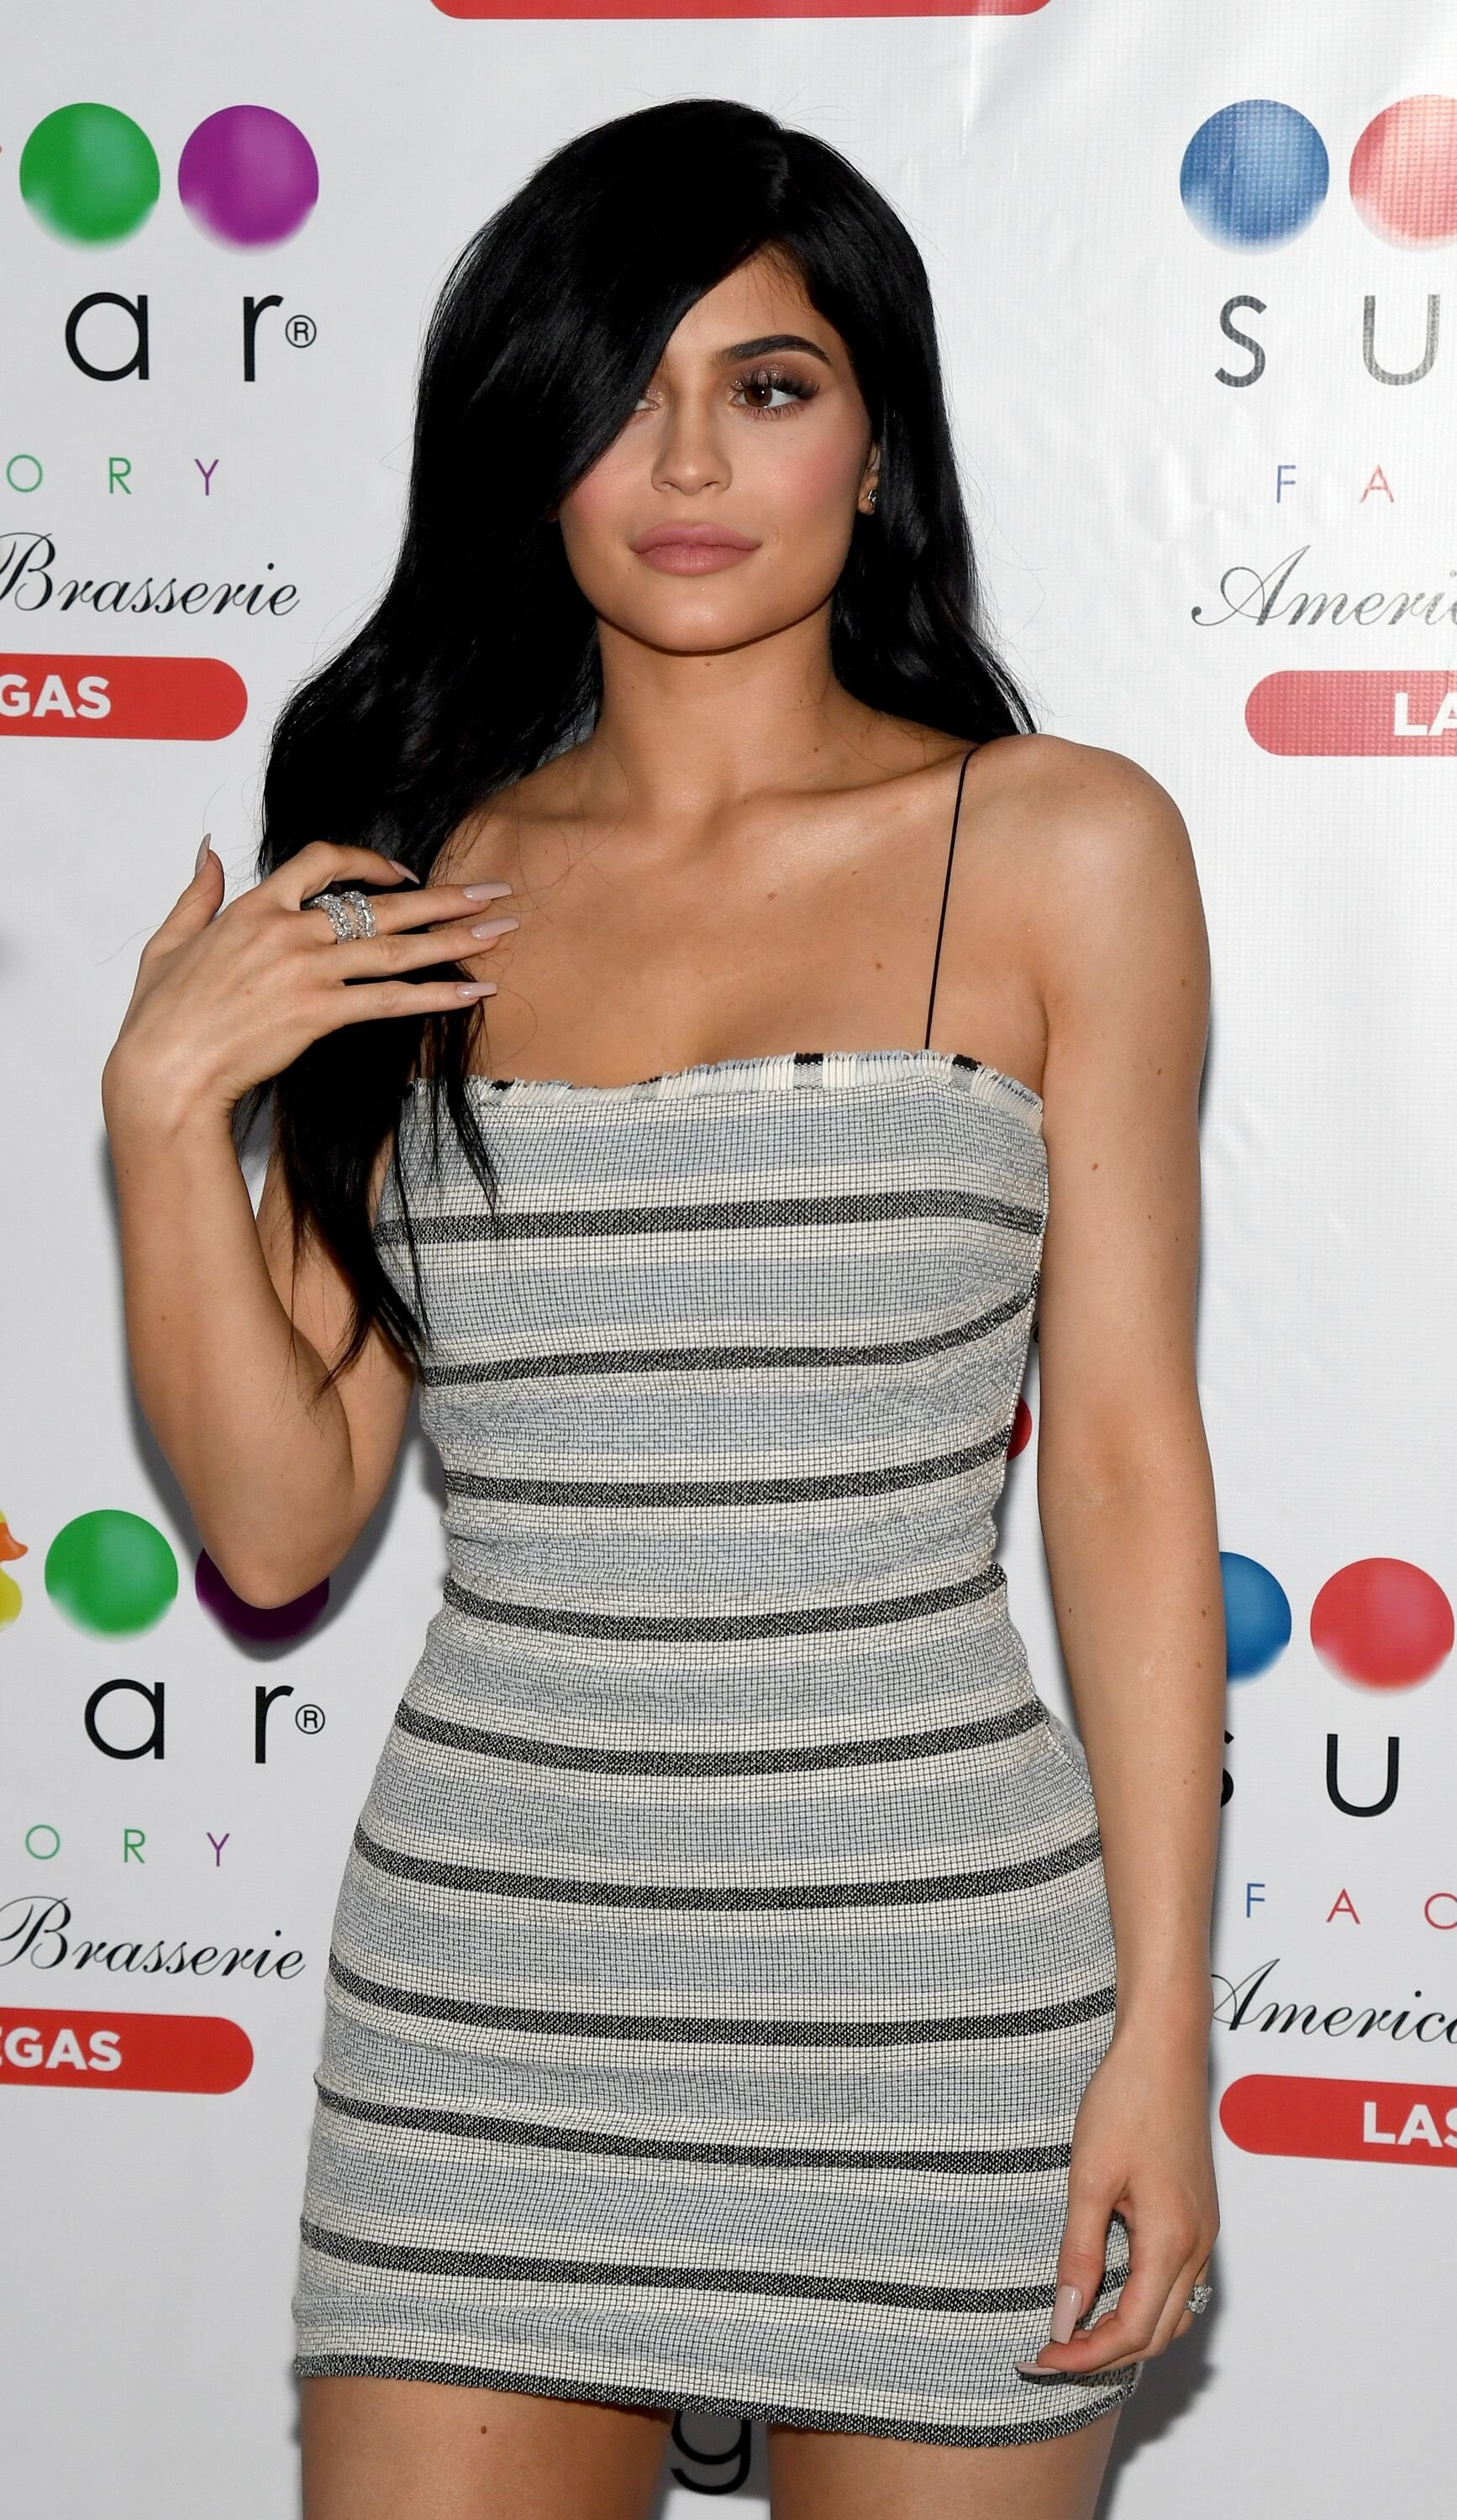 Television personality Kylie Jenner poses inside Sugar Factory American Brasserie at the Fashion Show mall on April 22, 2017 in Las Vegas, Nevada | Photo: Getty Images